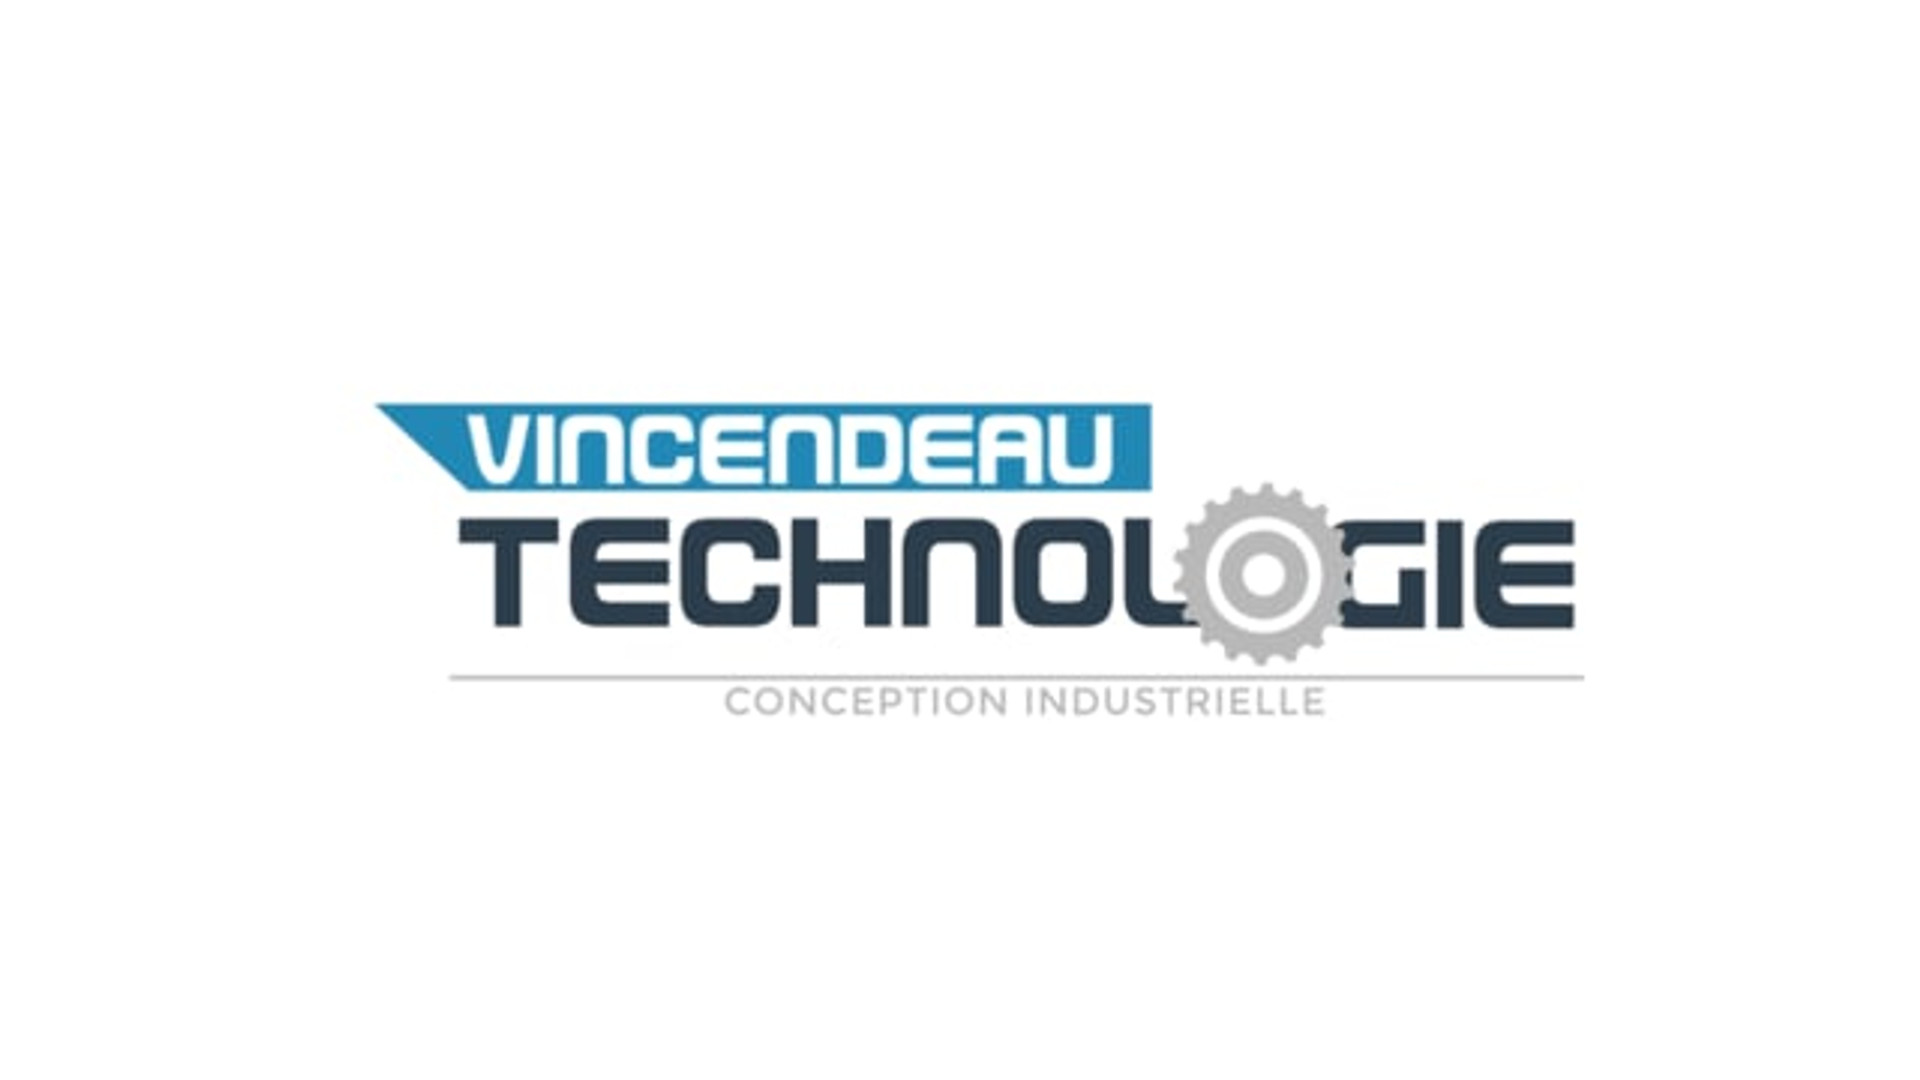 Vincendeau Technologie